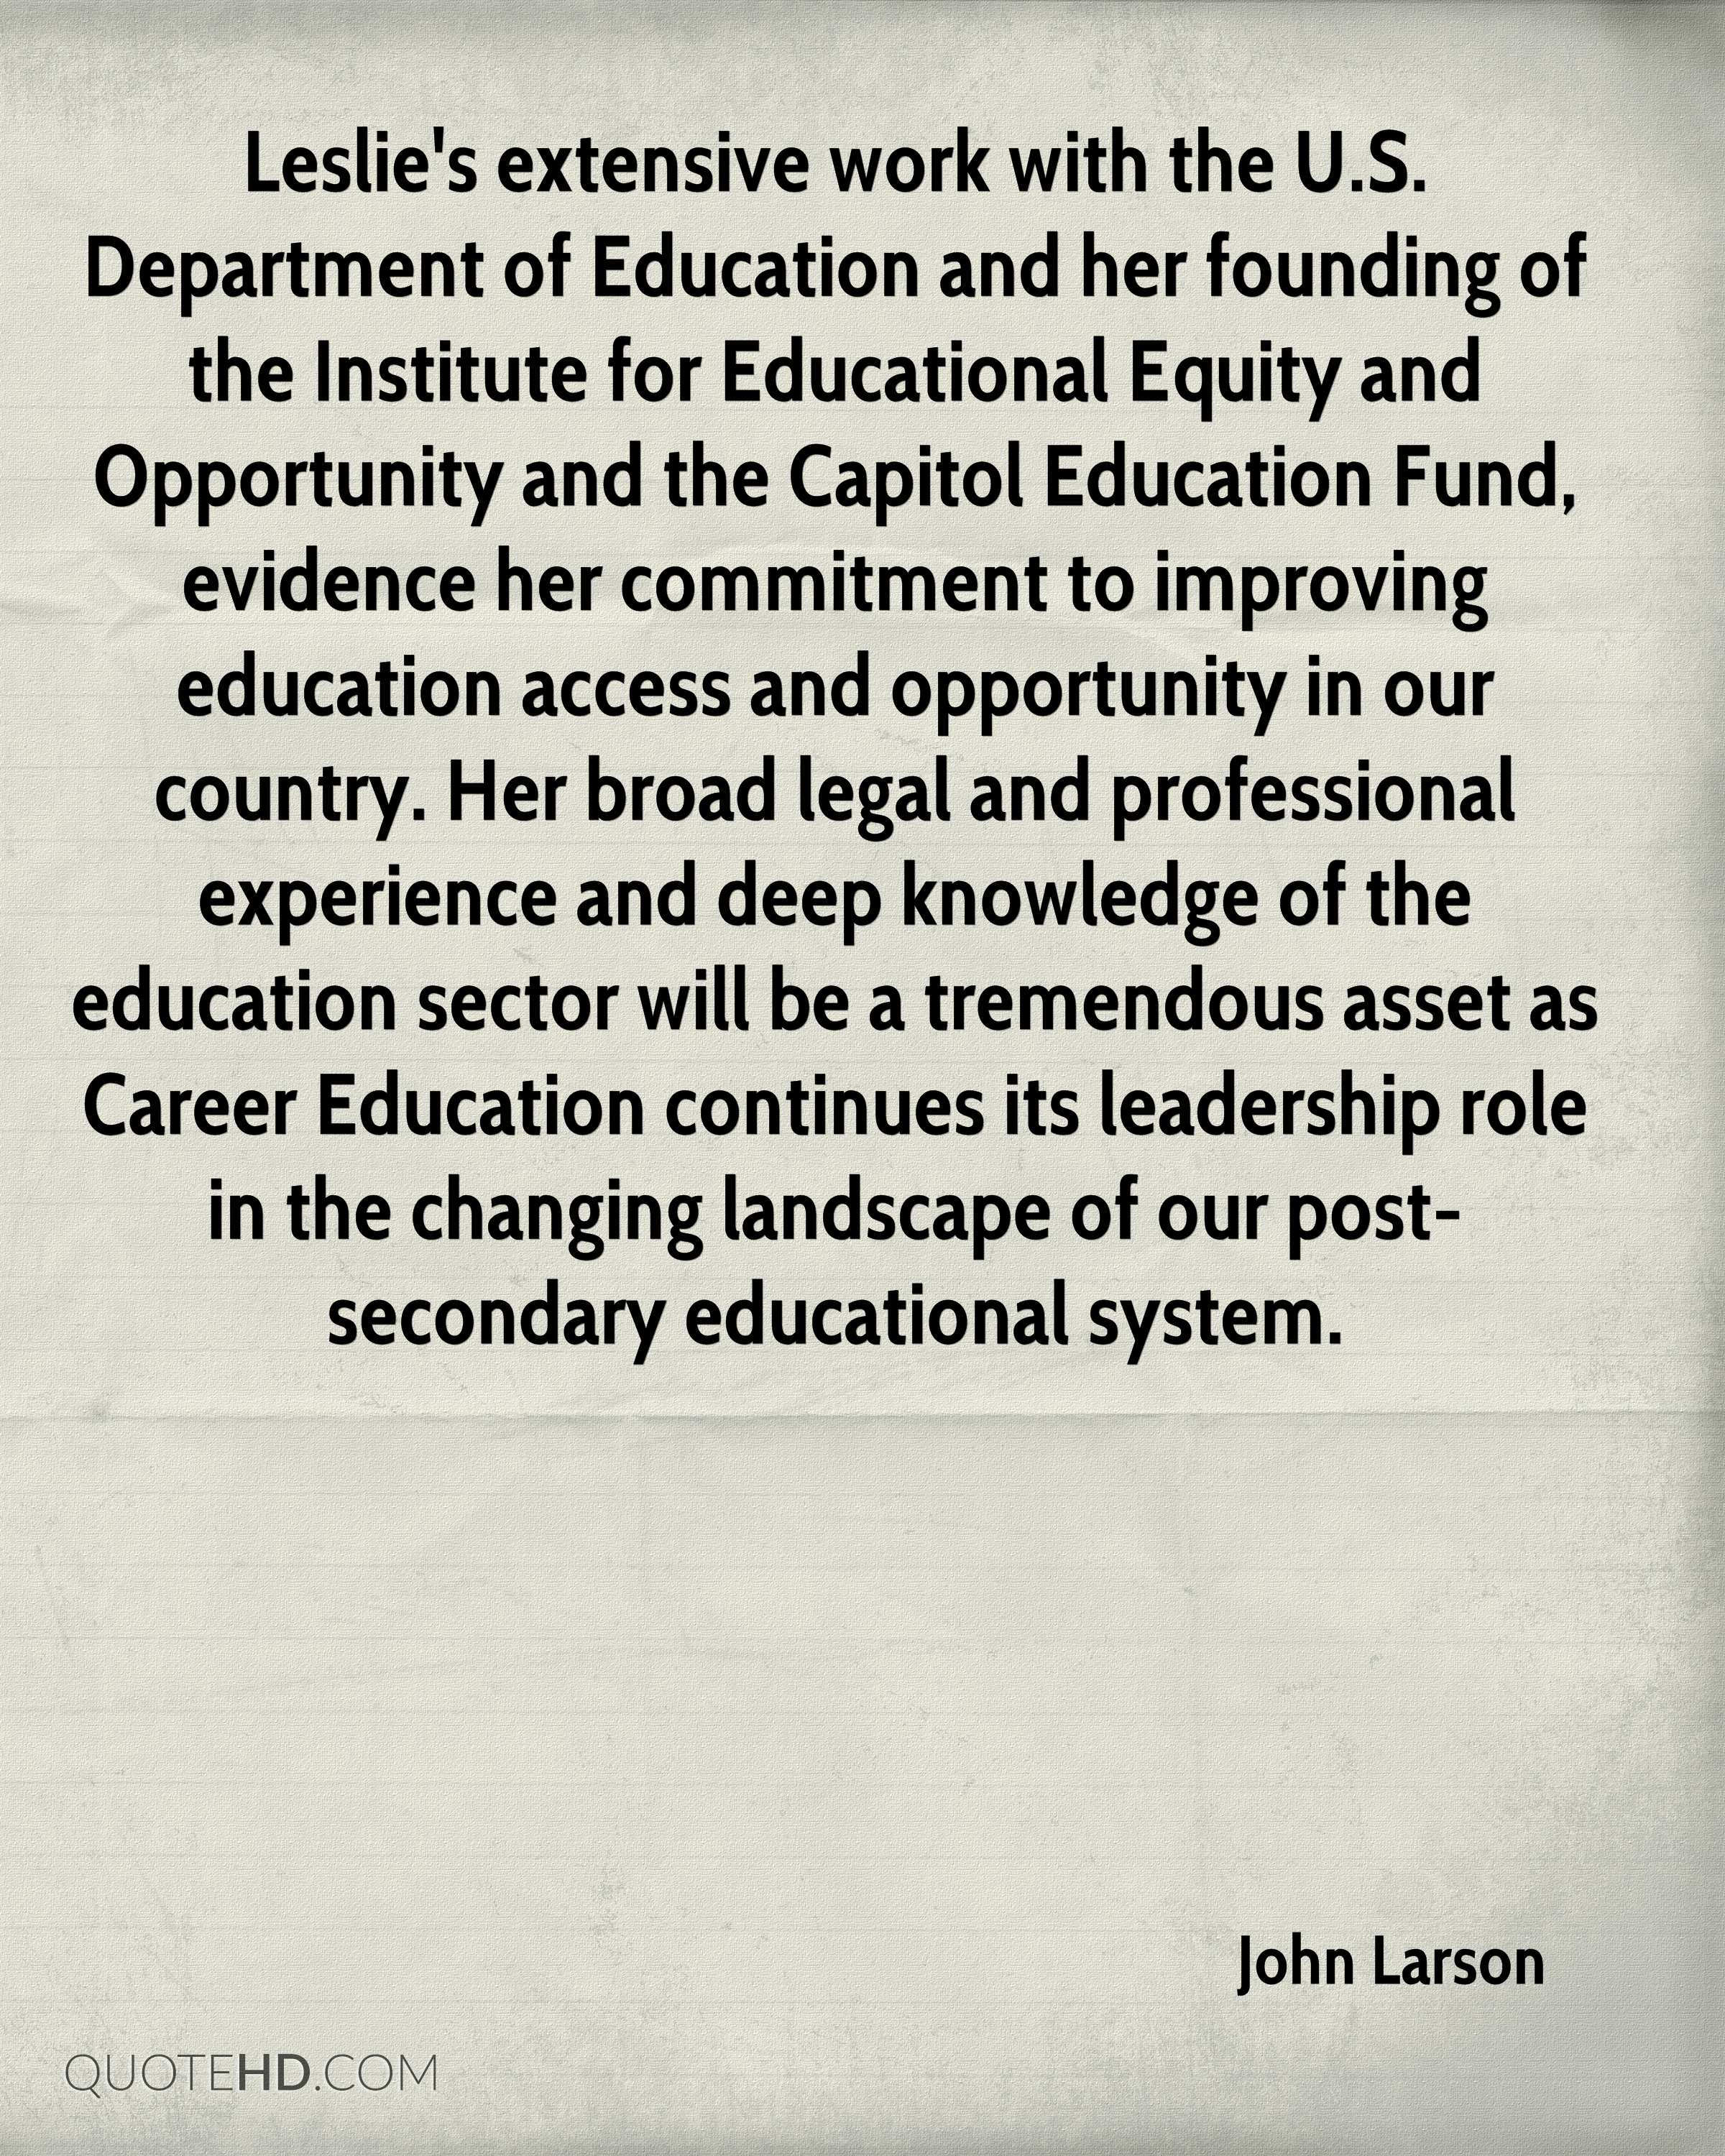 Leslie's extensive work with the U.S. Department of Education and her founding of the Institute for Educational Equity and Opportunity and the Capitol Education Fund, evidence her commitment to improving education access and opportunity in our country. Her broad legal and professional experience and deep knowledge of the education sector will be a tremendous asset as Career Education continues its leadership role in the changing landscape of our post-secondary educational system.